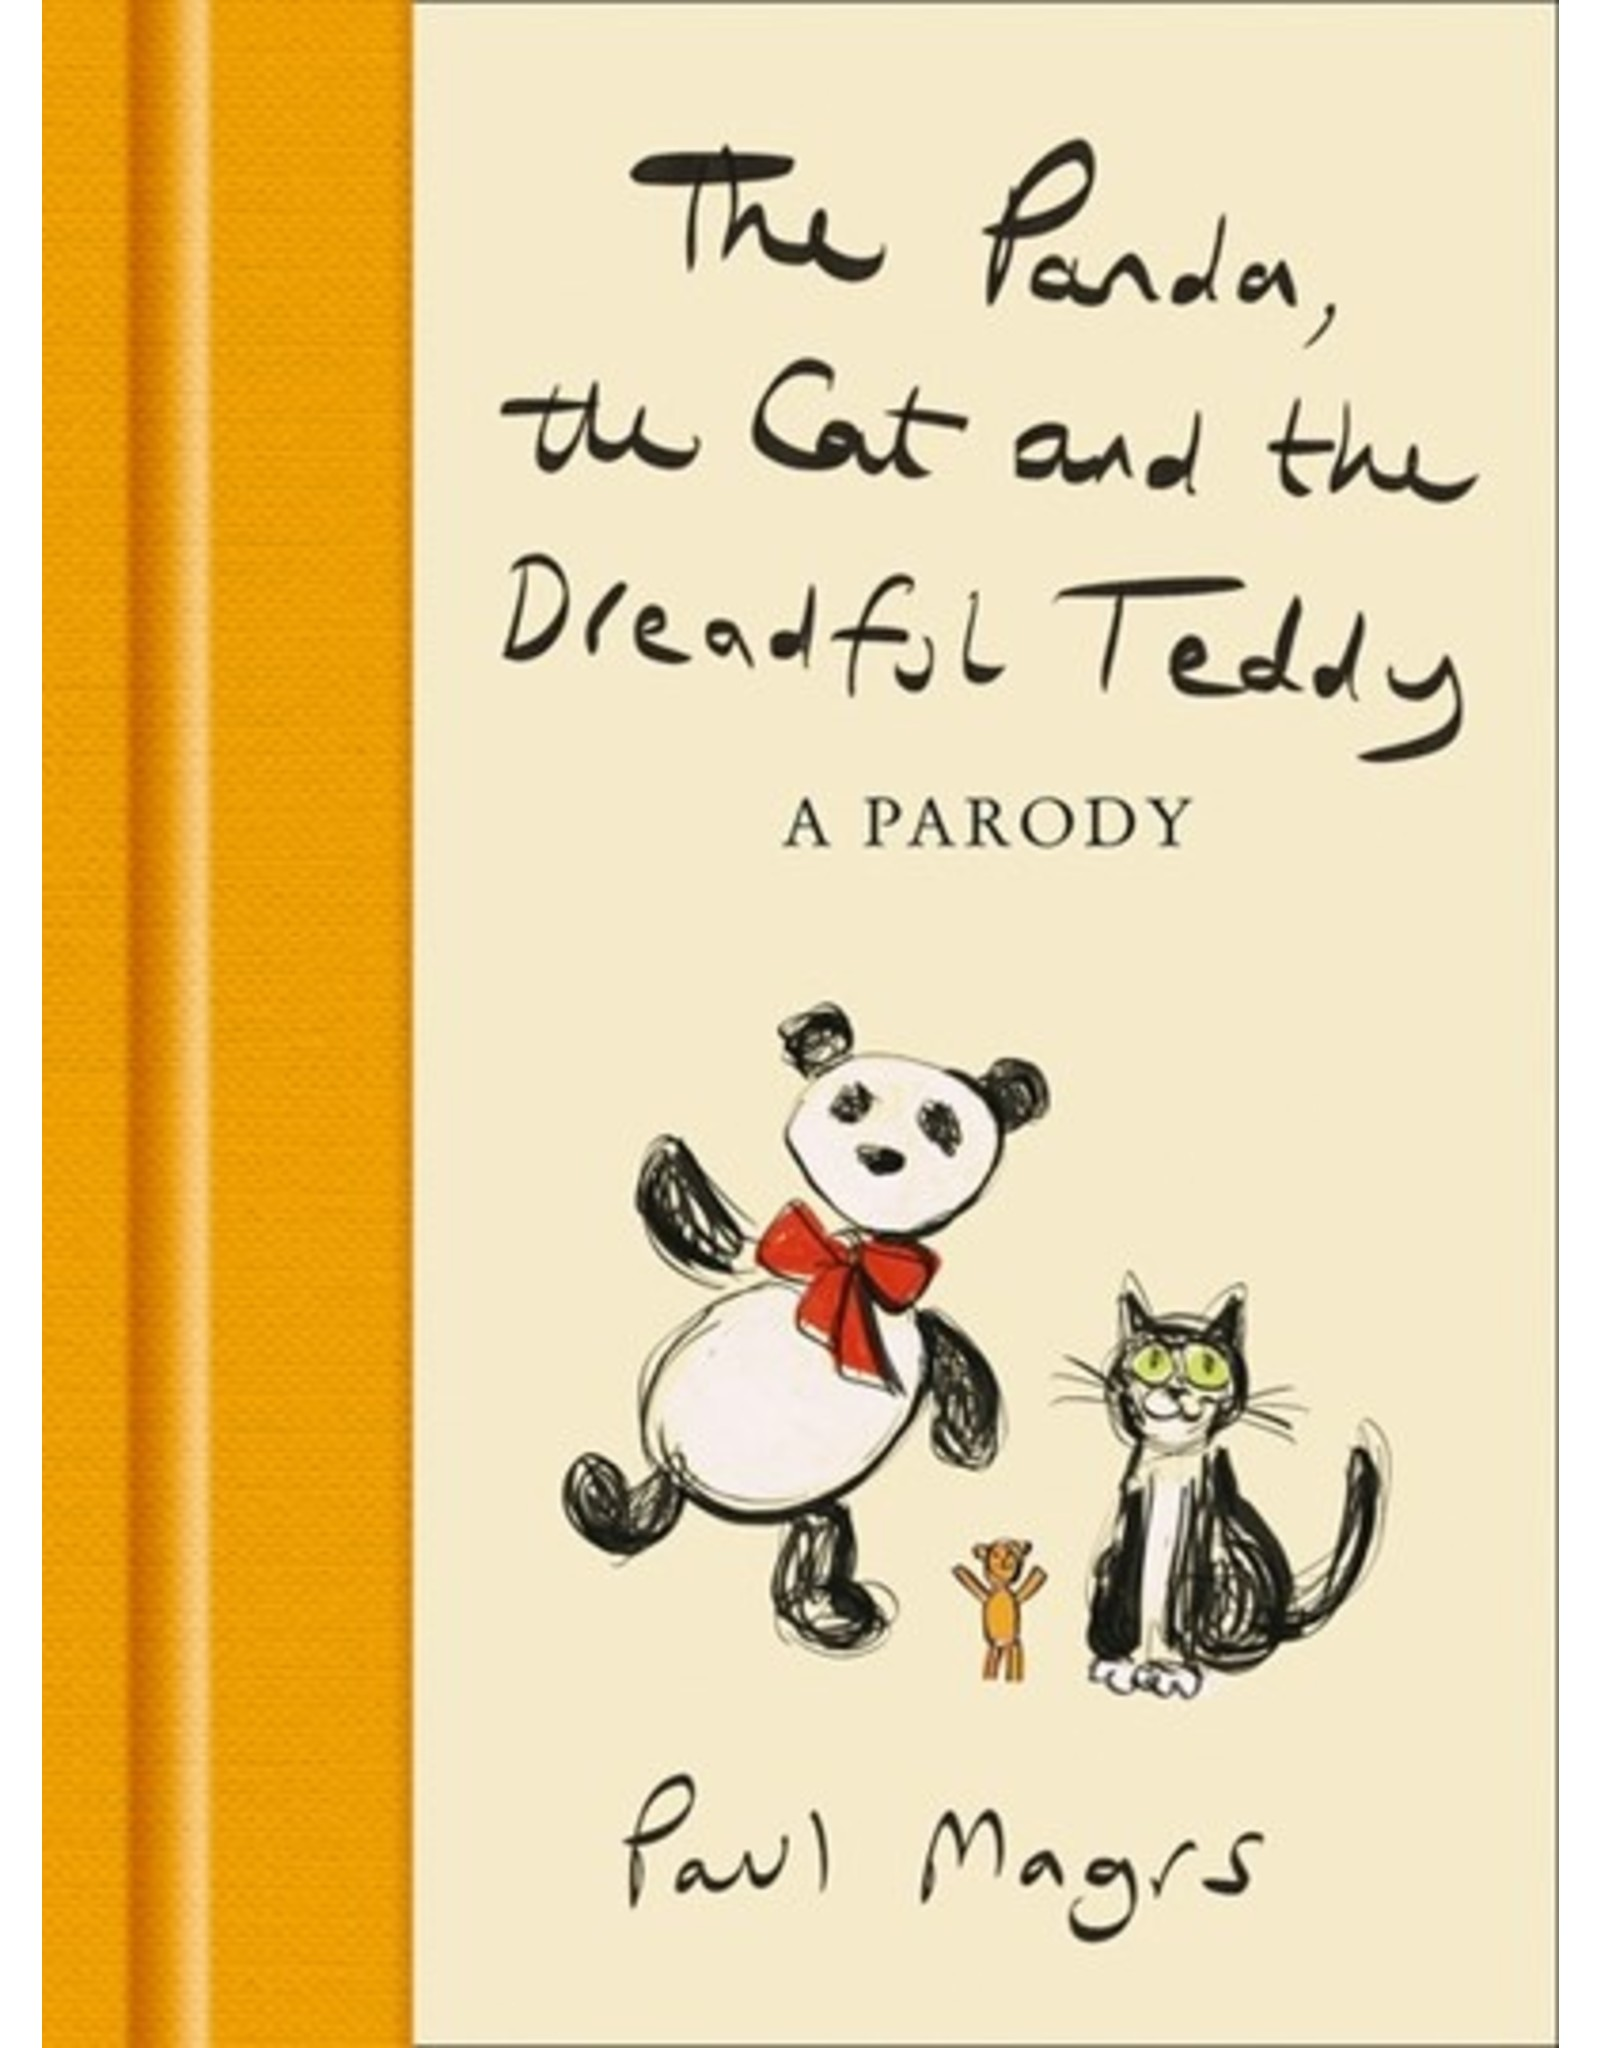 Books The Panda, the Cat and the Dreadful Teddy : A Parody by Paul Magrs